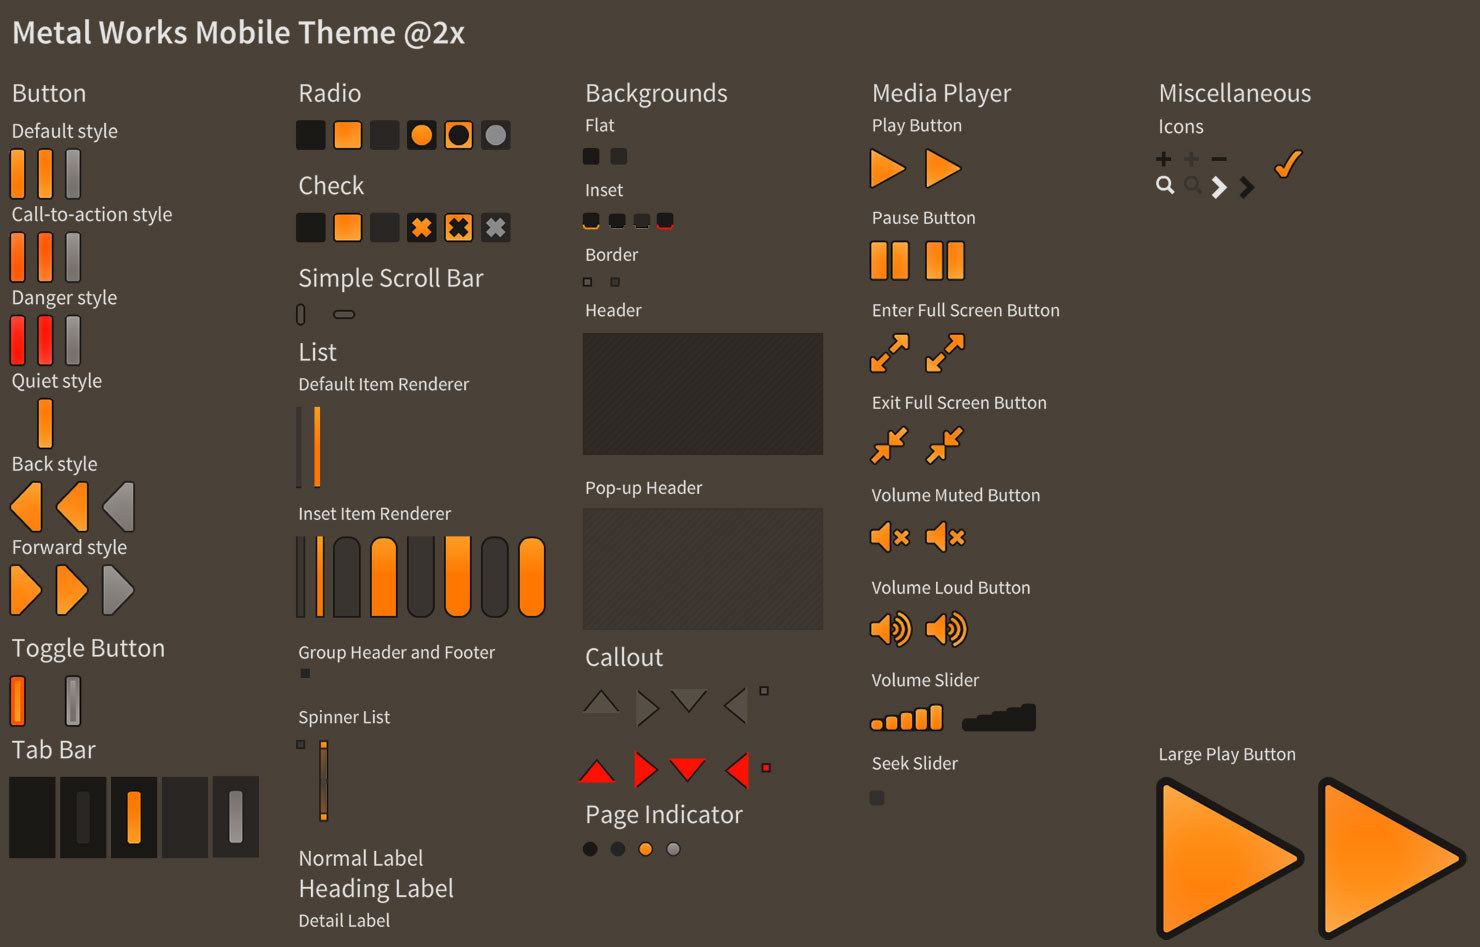 Original design sources for Feathers example themes - Feathers 3.2 ...